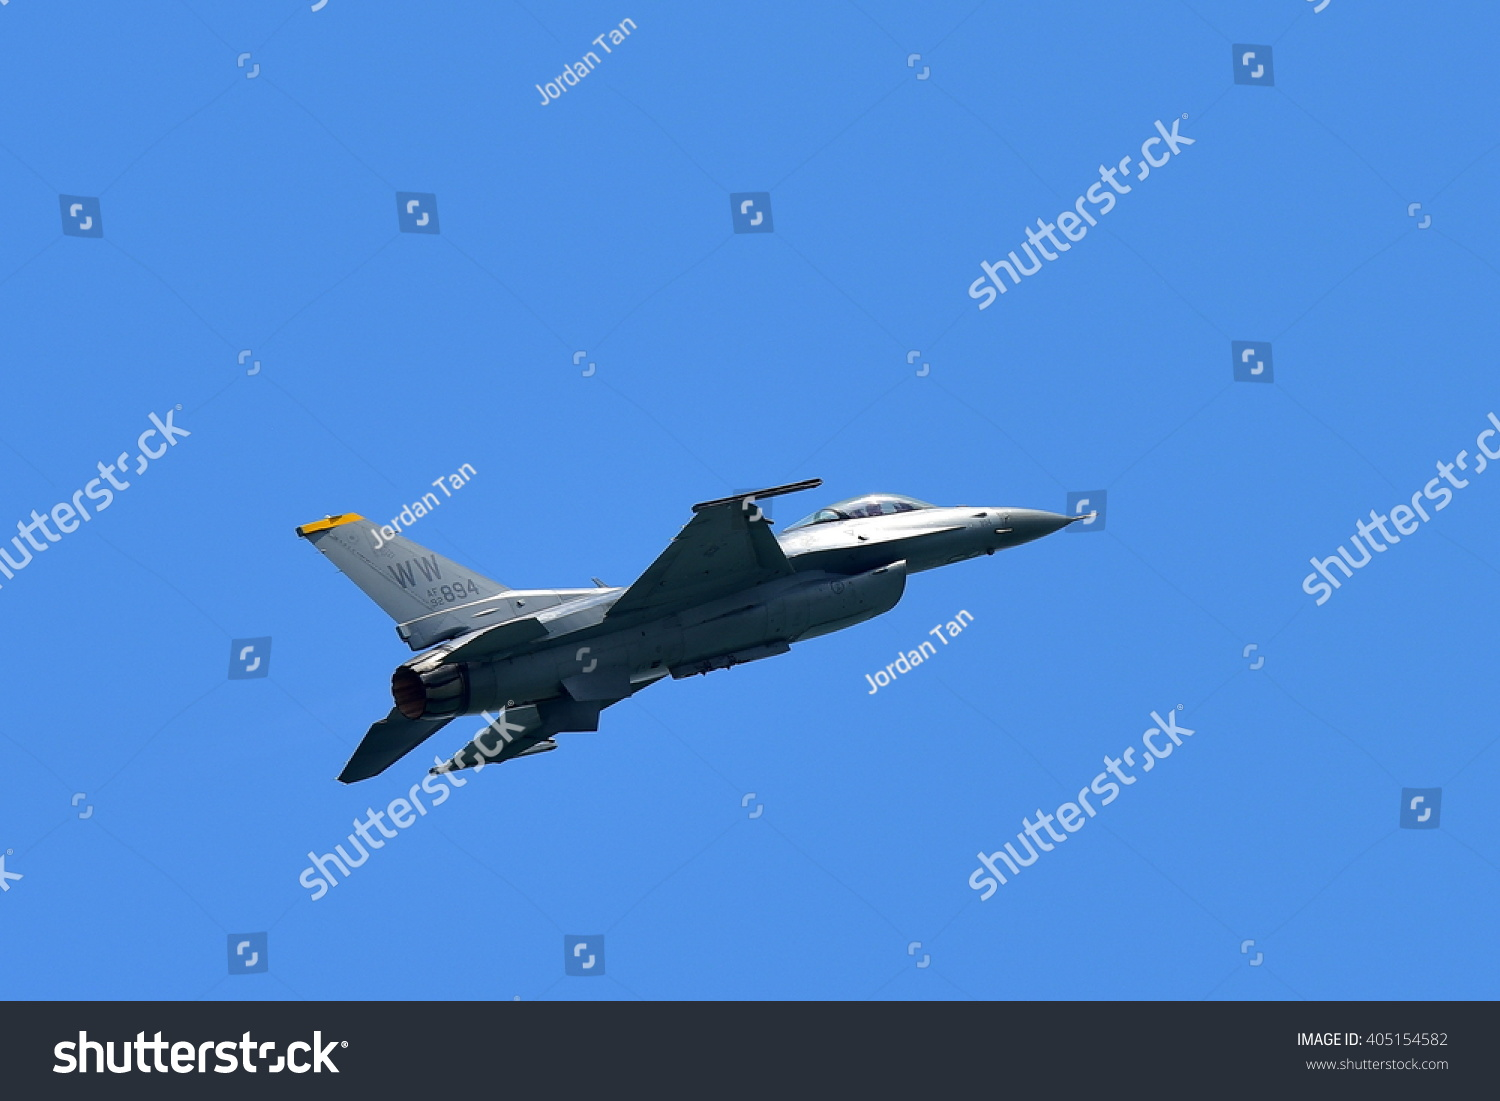 SINGAPORE FEBRUARY 16 USAF F-16C D Fighting Falcon performing aerial display at Singapore Airshow February 16 2016 in Singapore